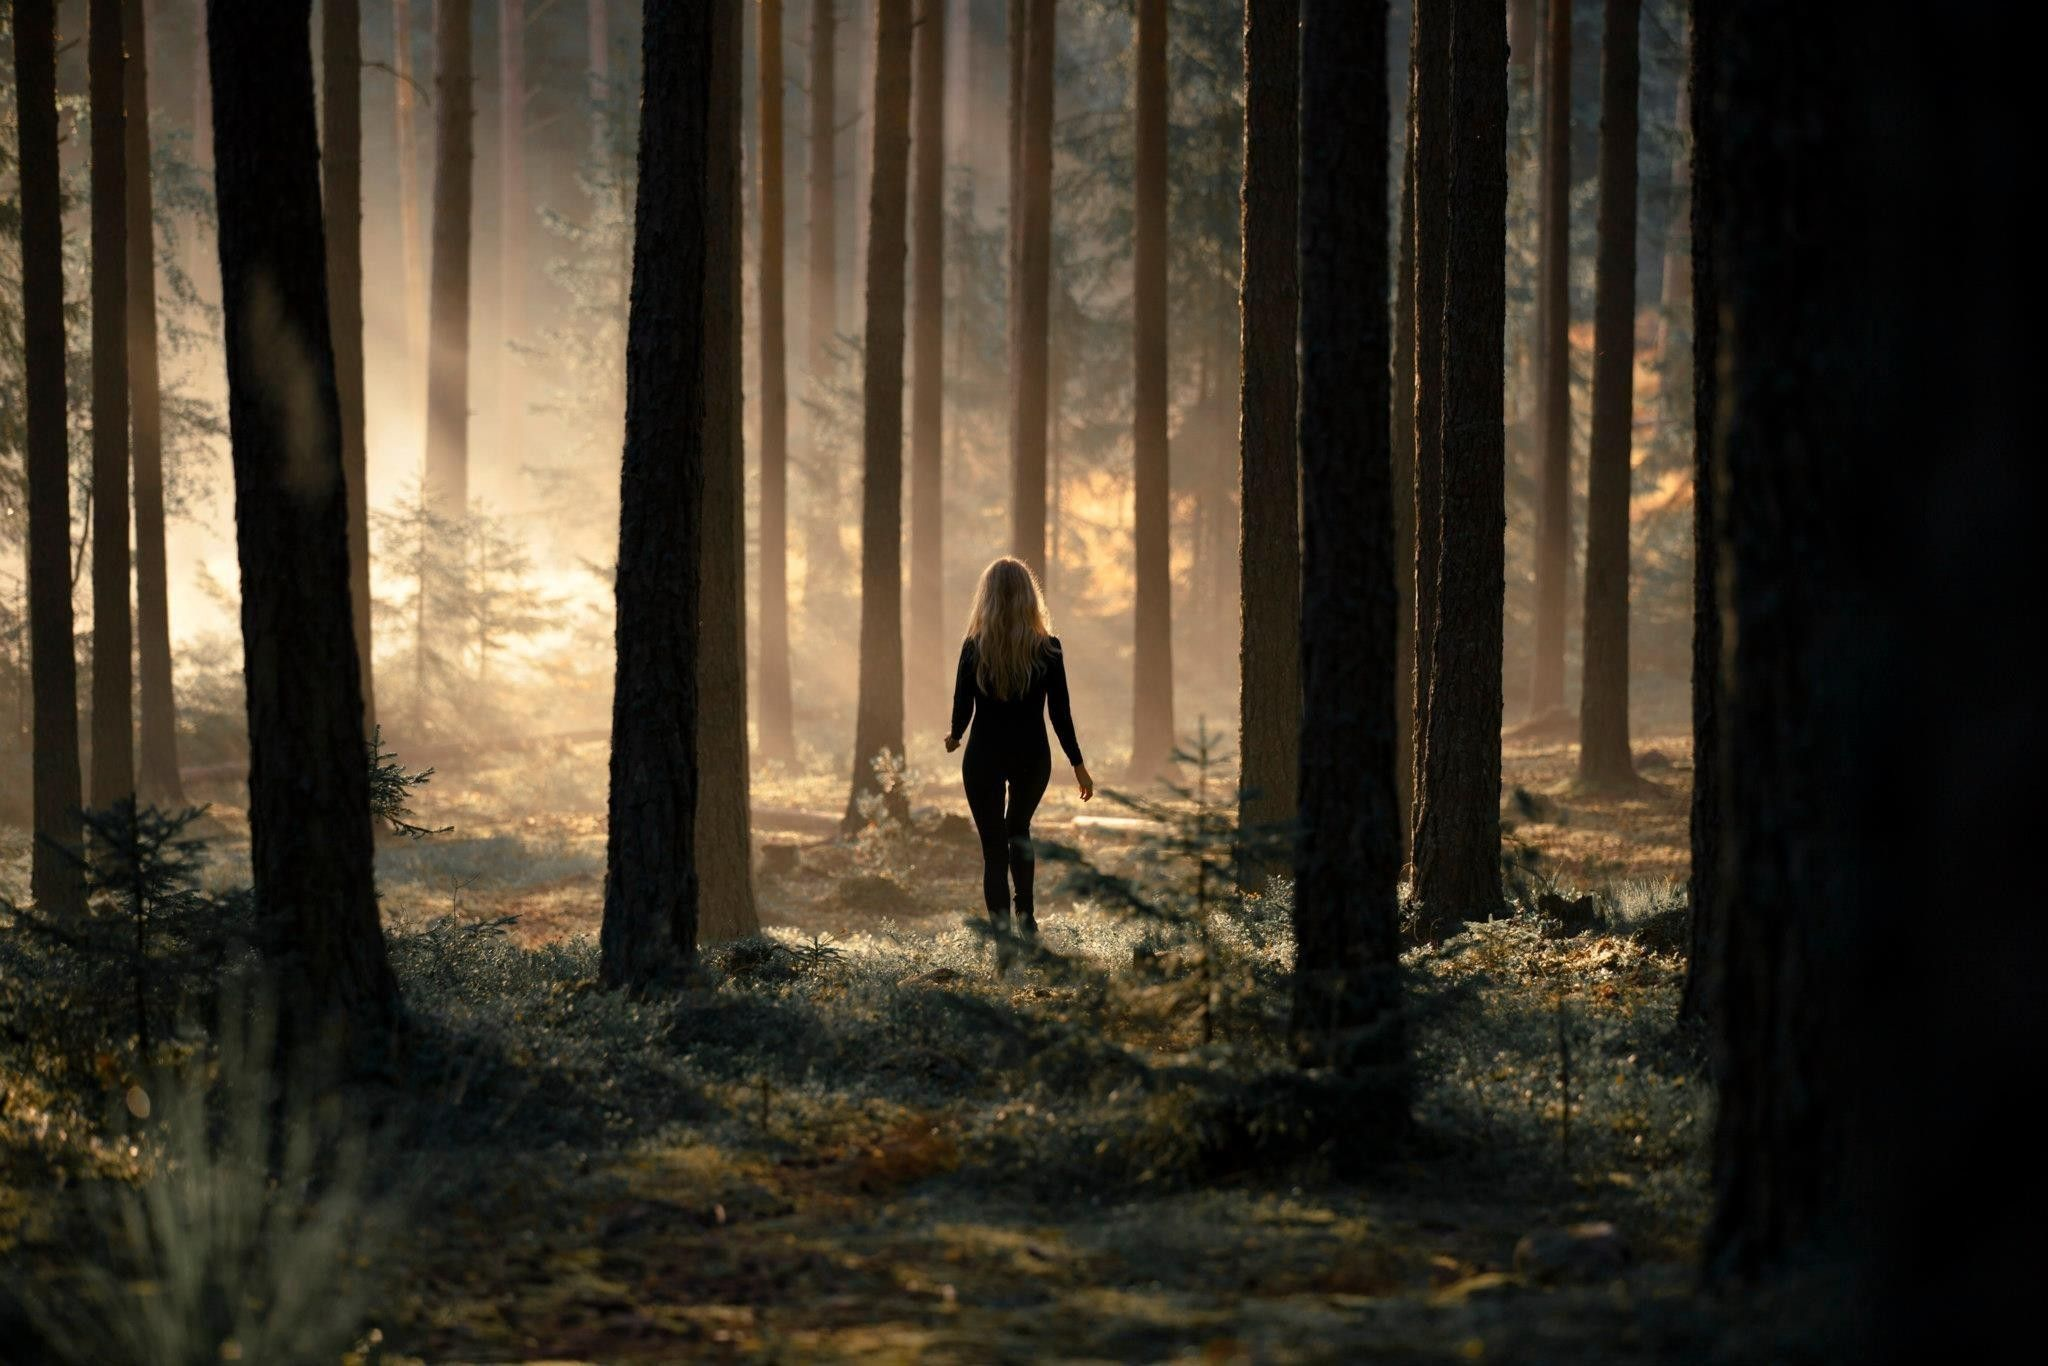 Alone Girl in Forest Wallpaper